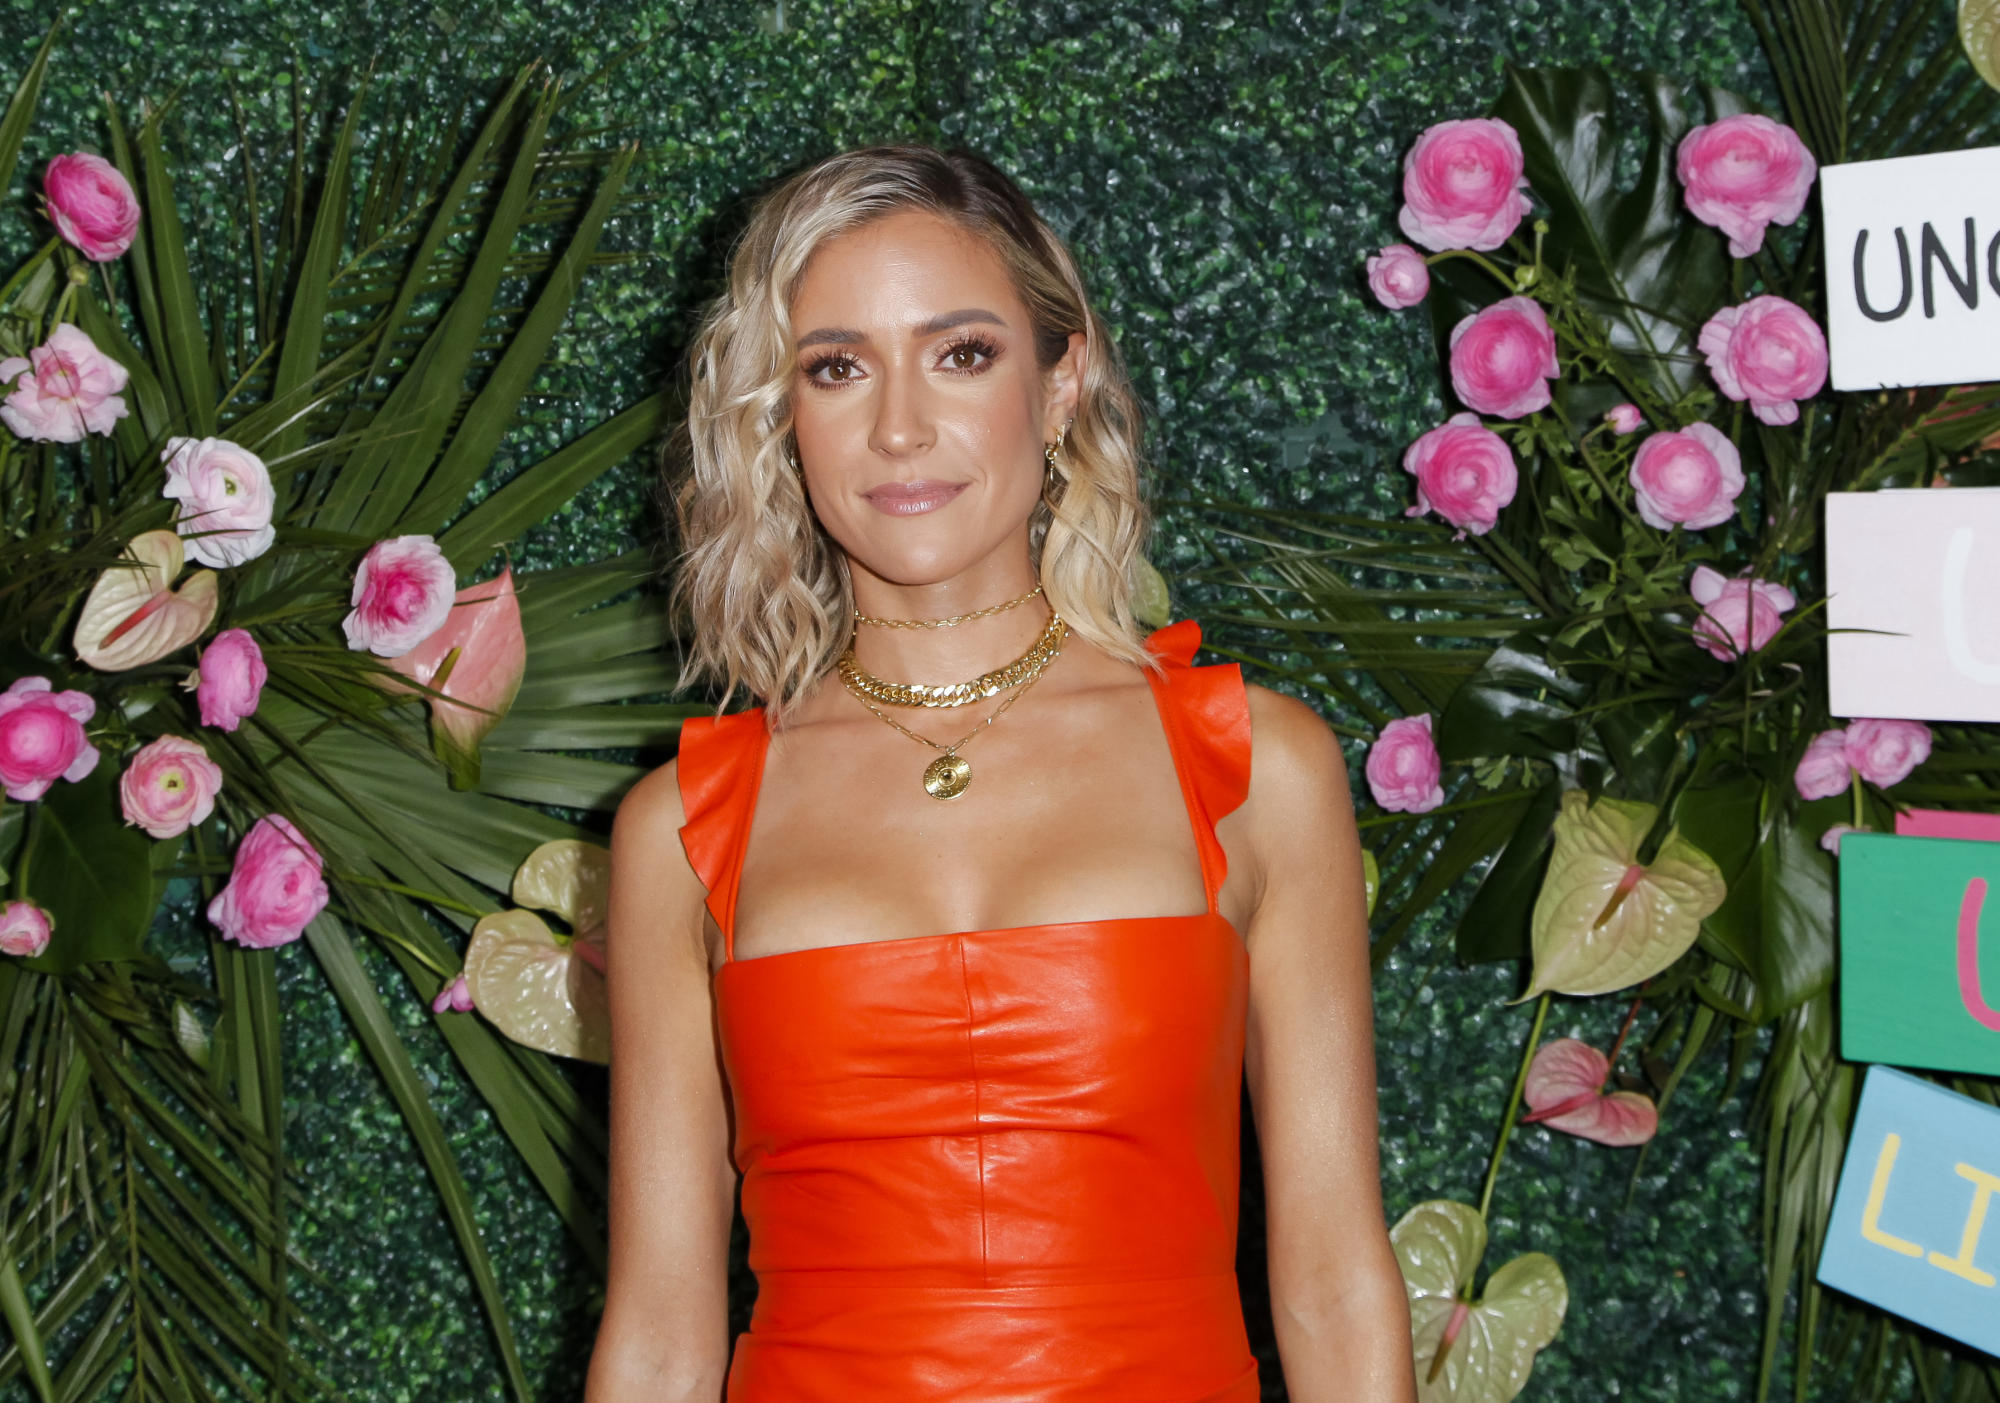 D03e3f90 b56b 11ea bfff bd5678fe89c9 Kristin Cavallari shares daring bikini photo from Mexican vacation 8216 Suns out buns out 8217 8211 Yahoo News Canada